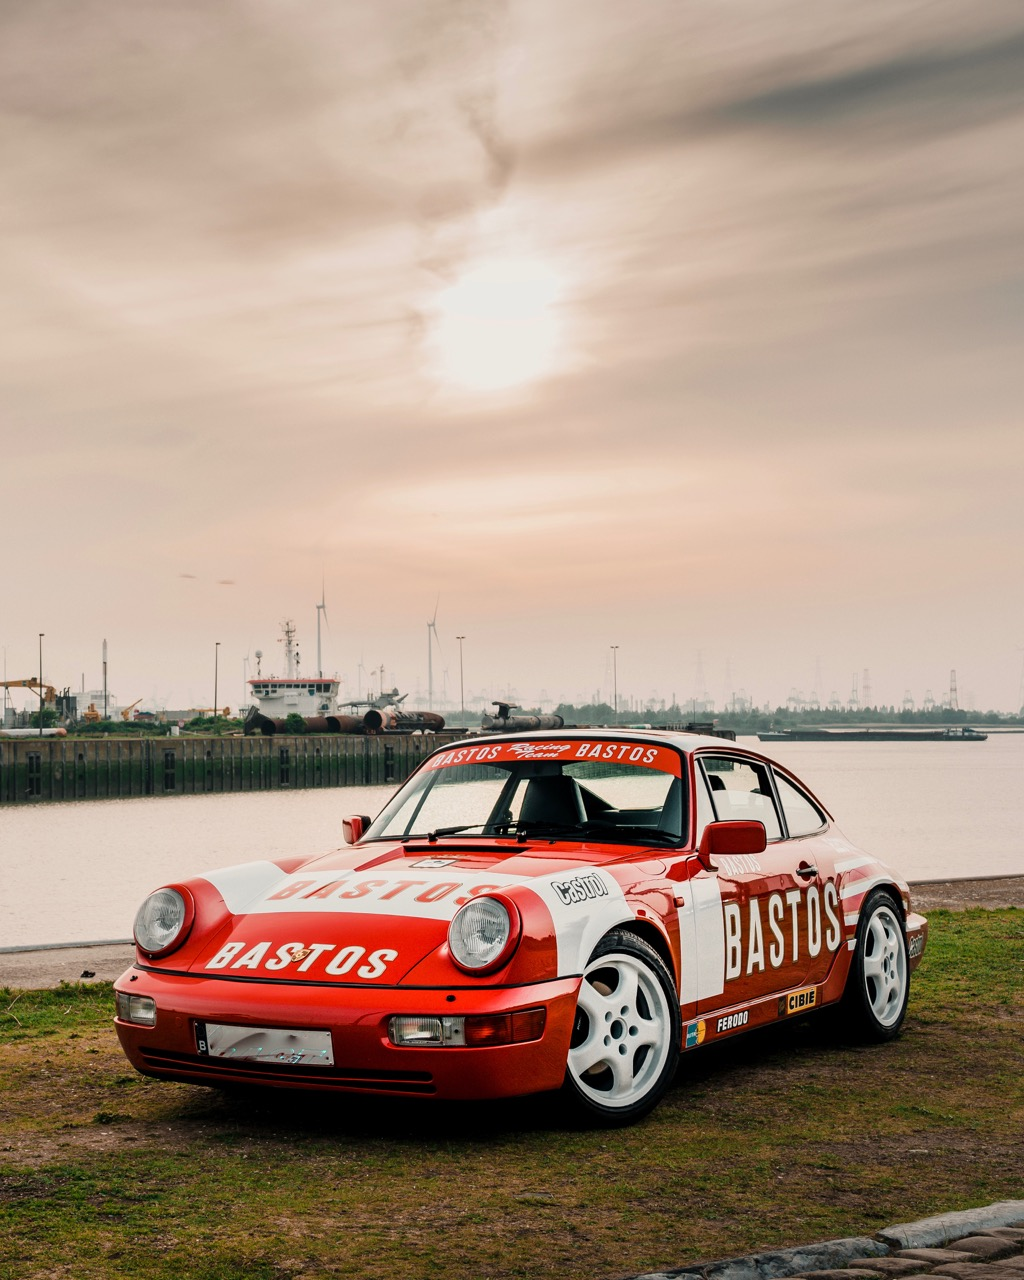 youngtimer.one - Porsche 964 Carrera 4 - Guards Red - 1989 - 2 of 20